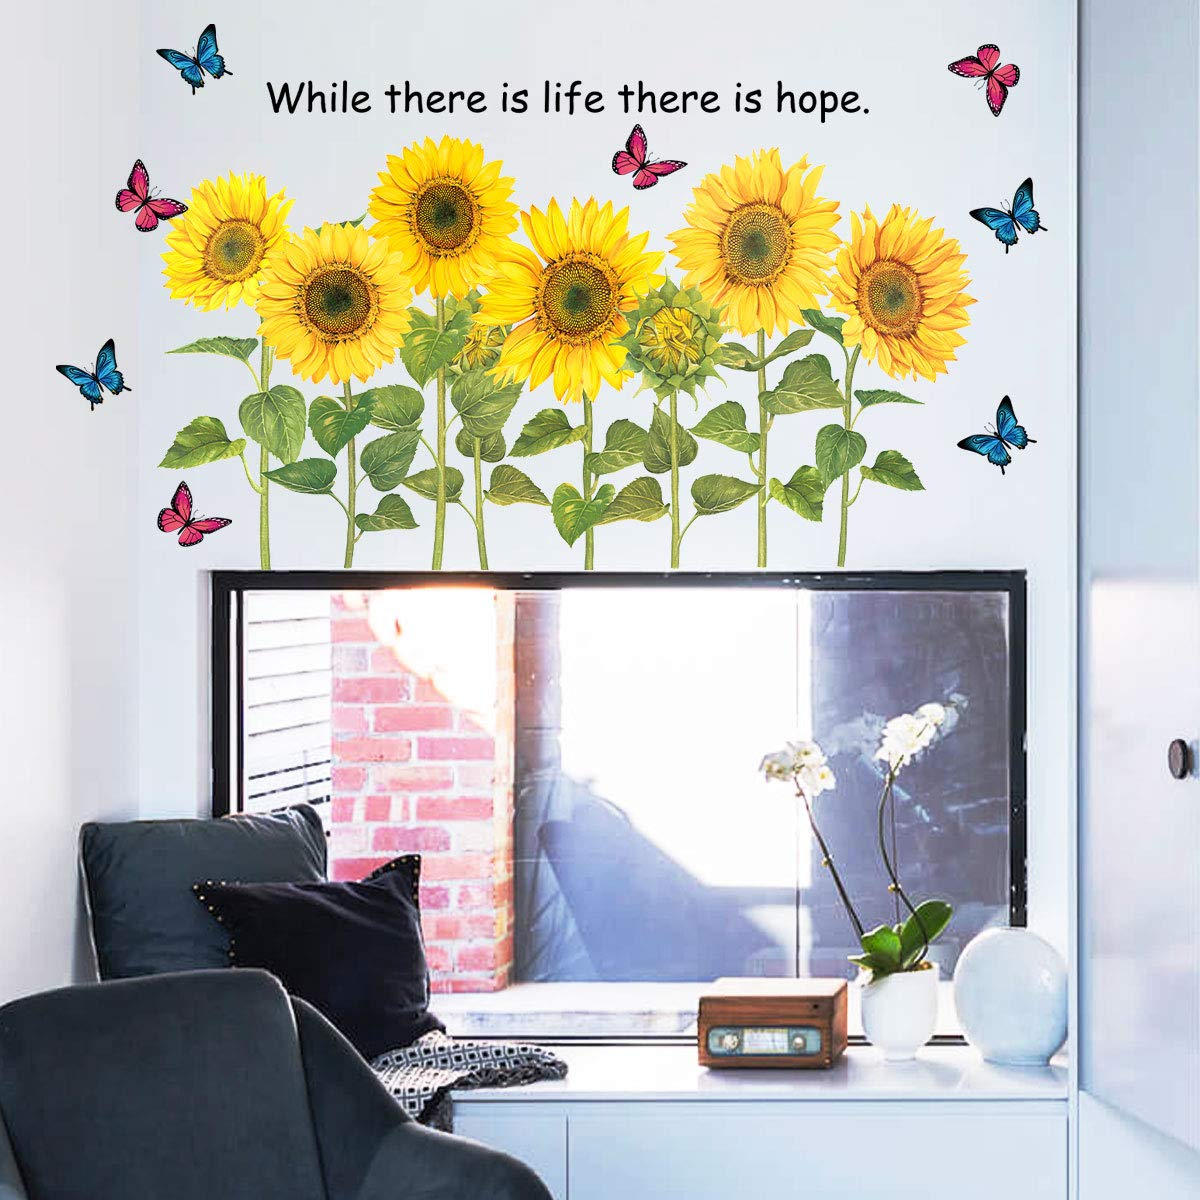 MOTASOM Removable PVC Flower Plant Leaf Peel and Stick Wall Stickers Sunflower and Butterfly Wall Decals DIY Wall Art Decor Home Decoration for Kids Baby Living Room TV Background Bedroom